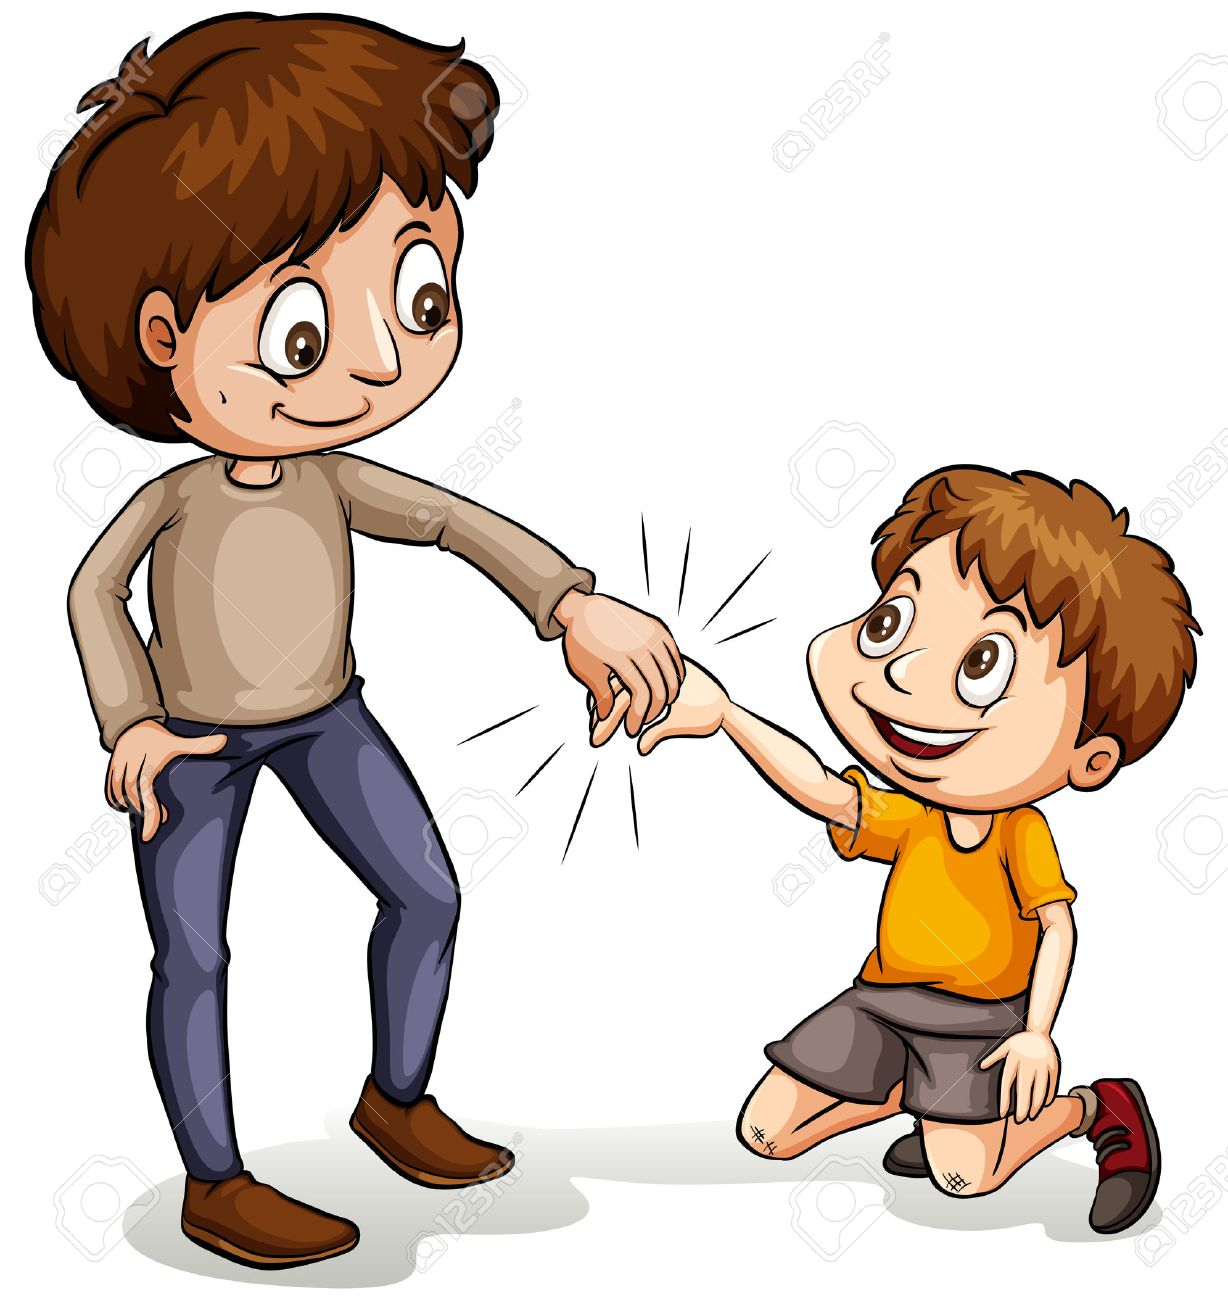 Image showing  a helpful bigger boy holding his hand out, to grasp the hand of a smaller boy who has fallen,   and is in need of a hand up